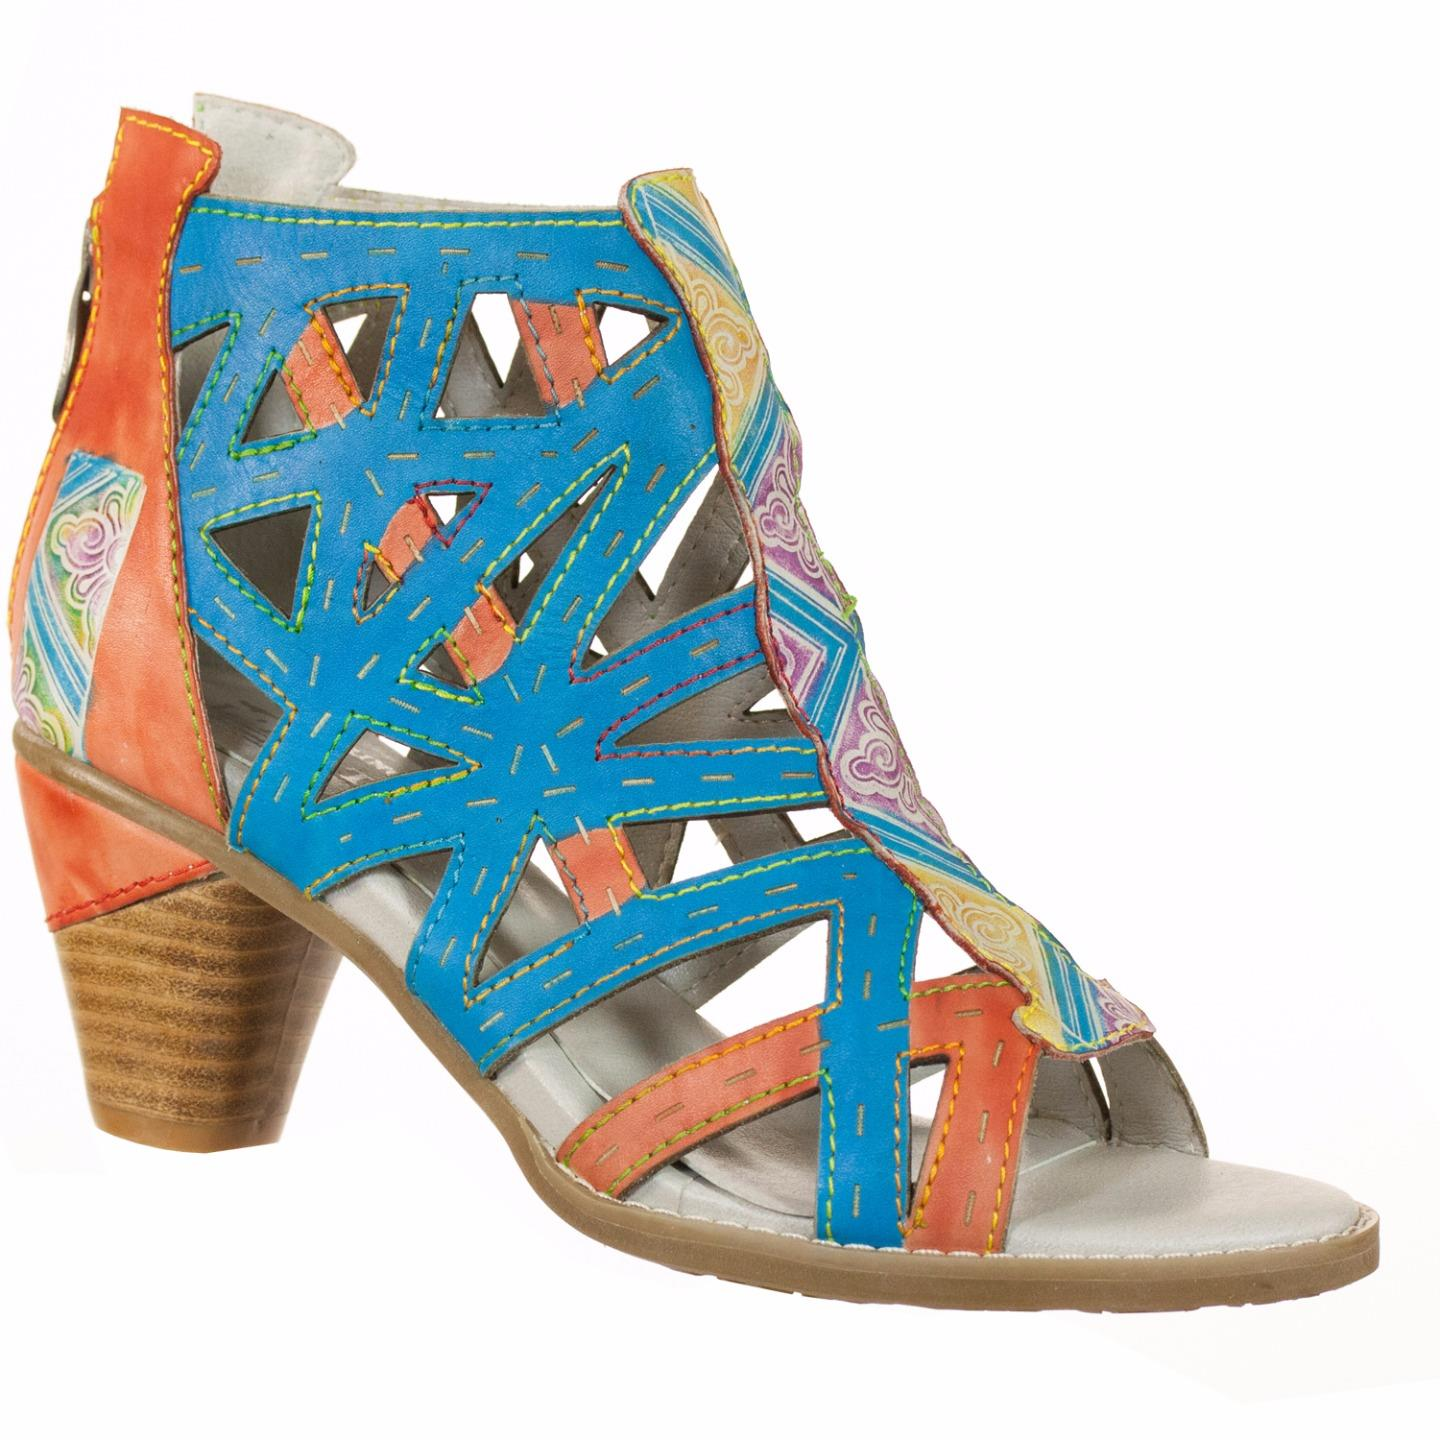 L'Artiste By Spring Step Coastline Women's Sandals Turquoise Multi EU 37 US 7 by Spring Step